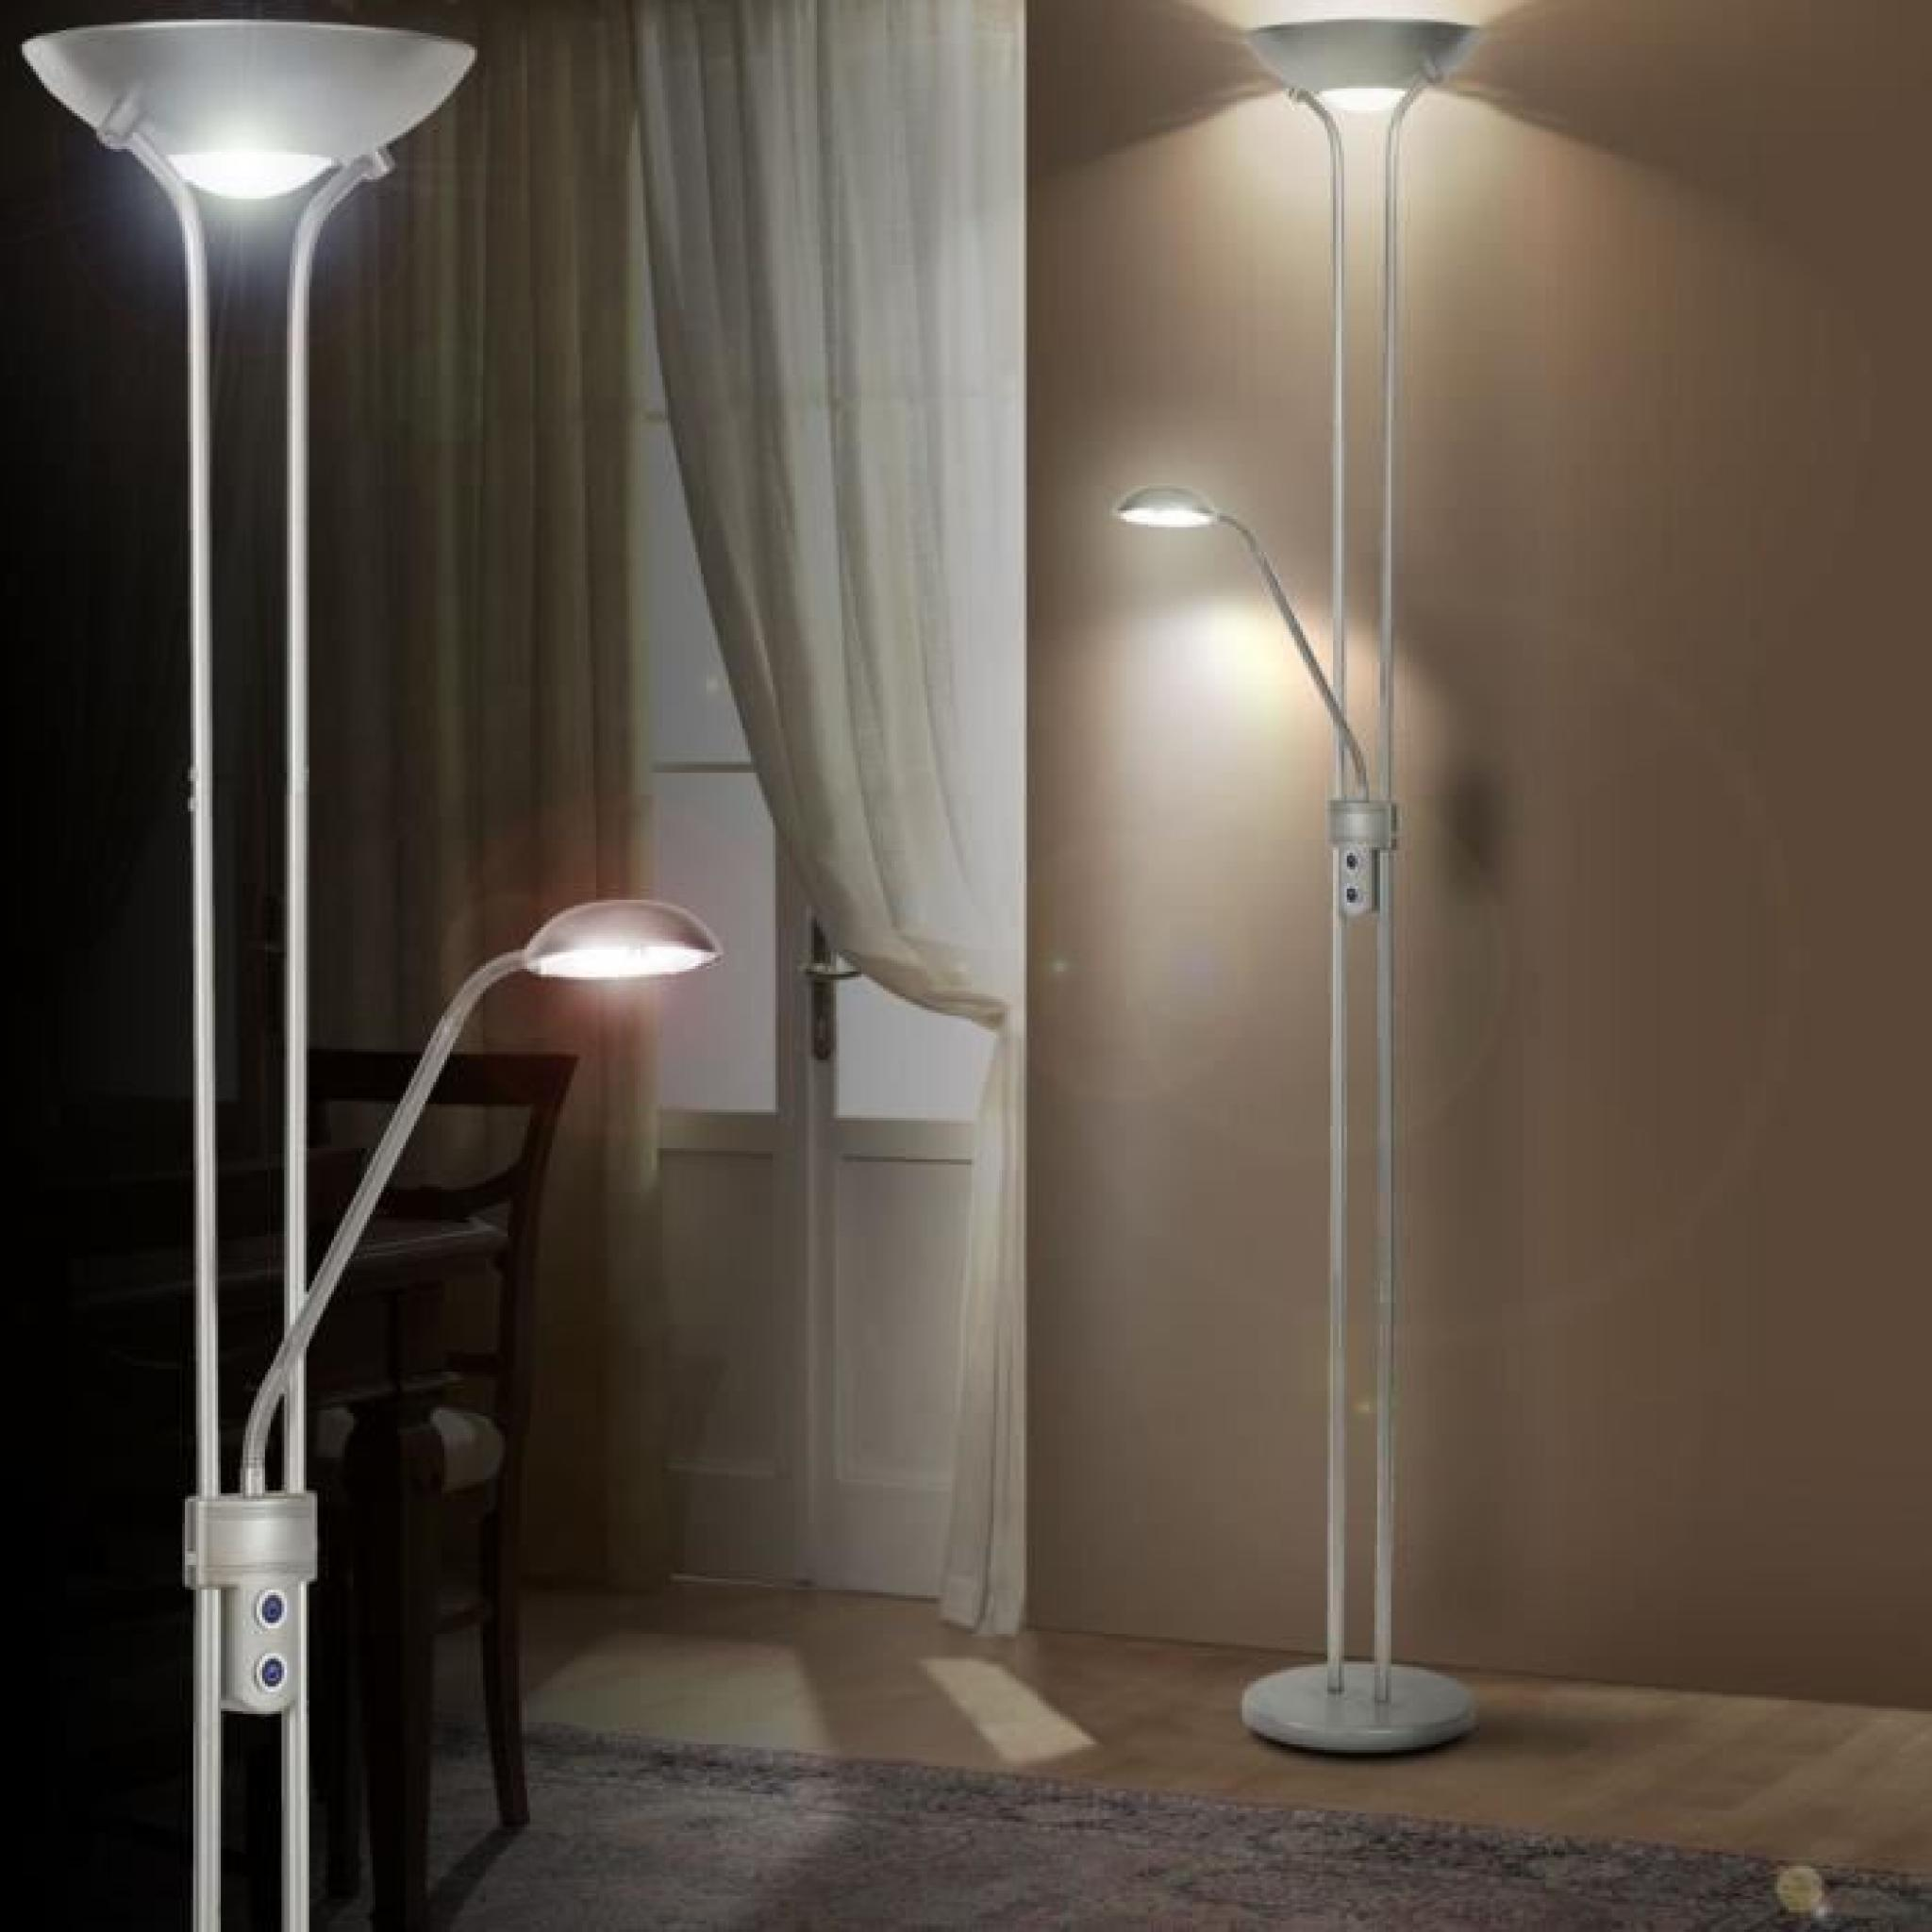 lampadaire led 25 watts luminaire spot interrupteur lampe. Black Bedroom Furniture Sets. Home Design Ideas